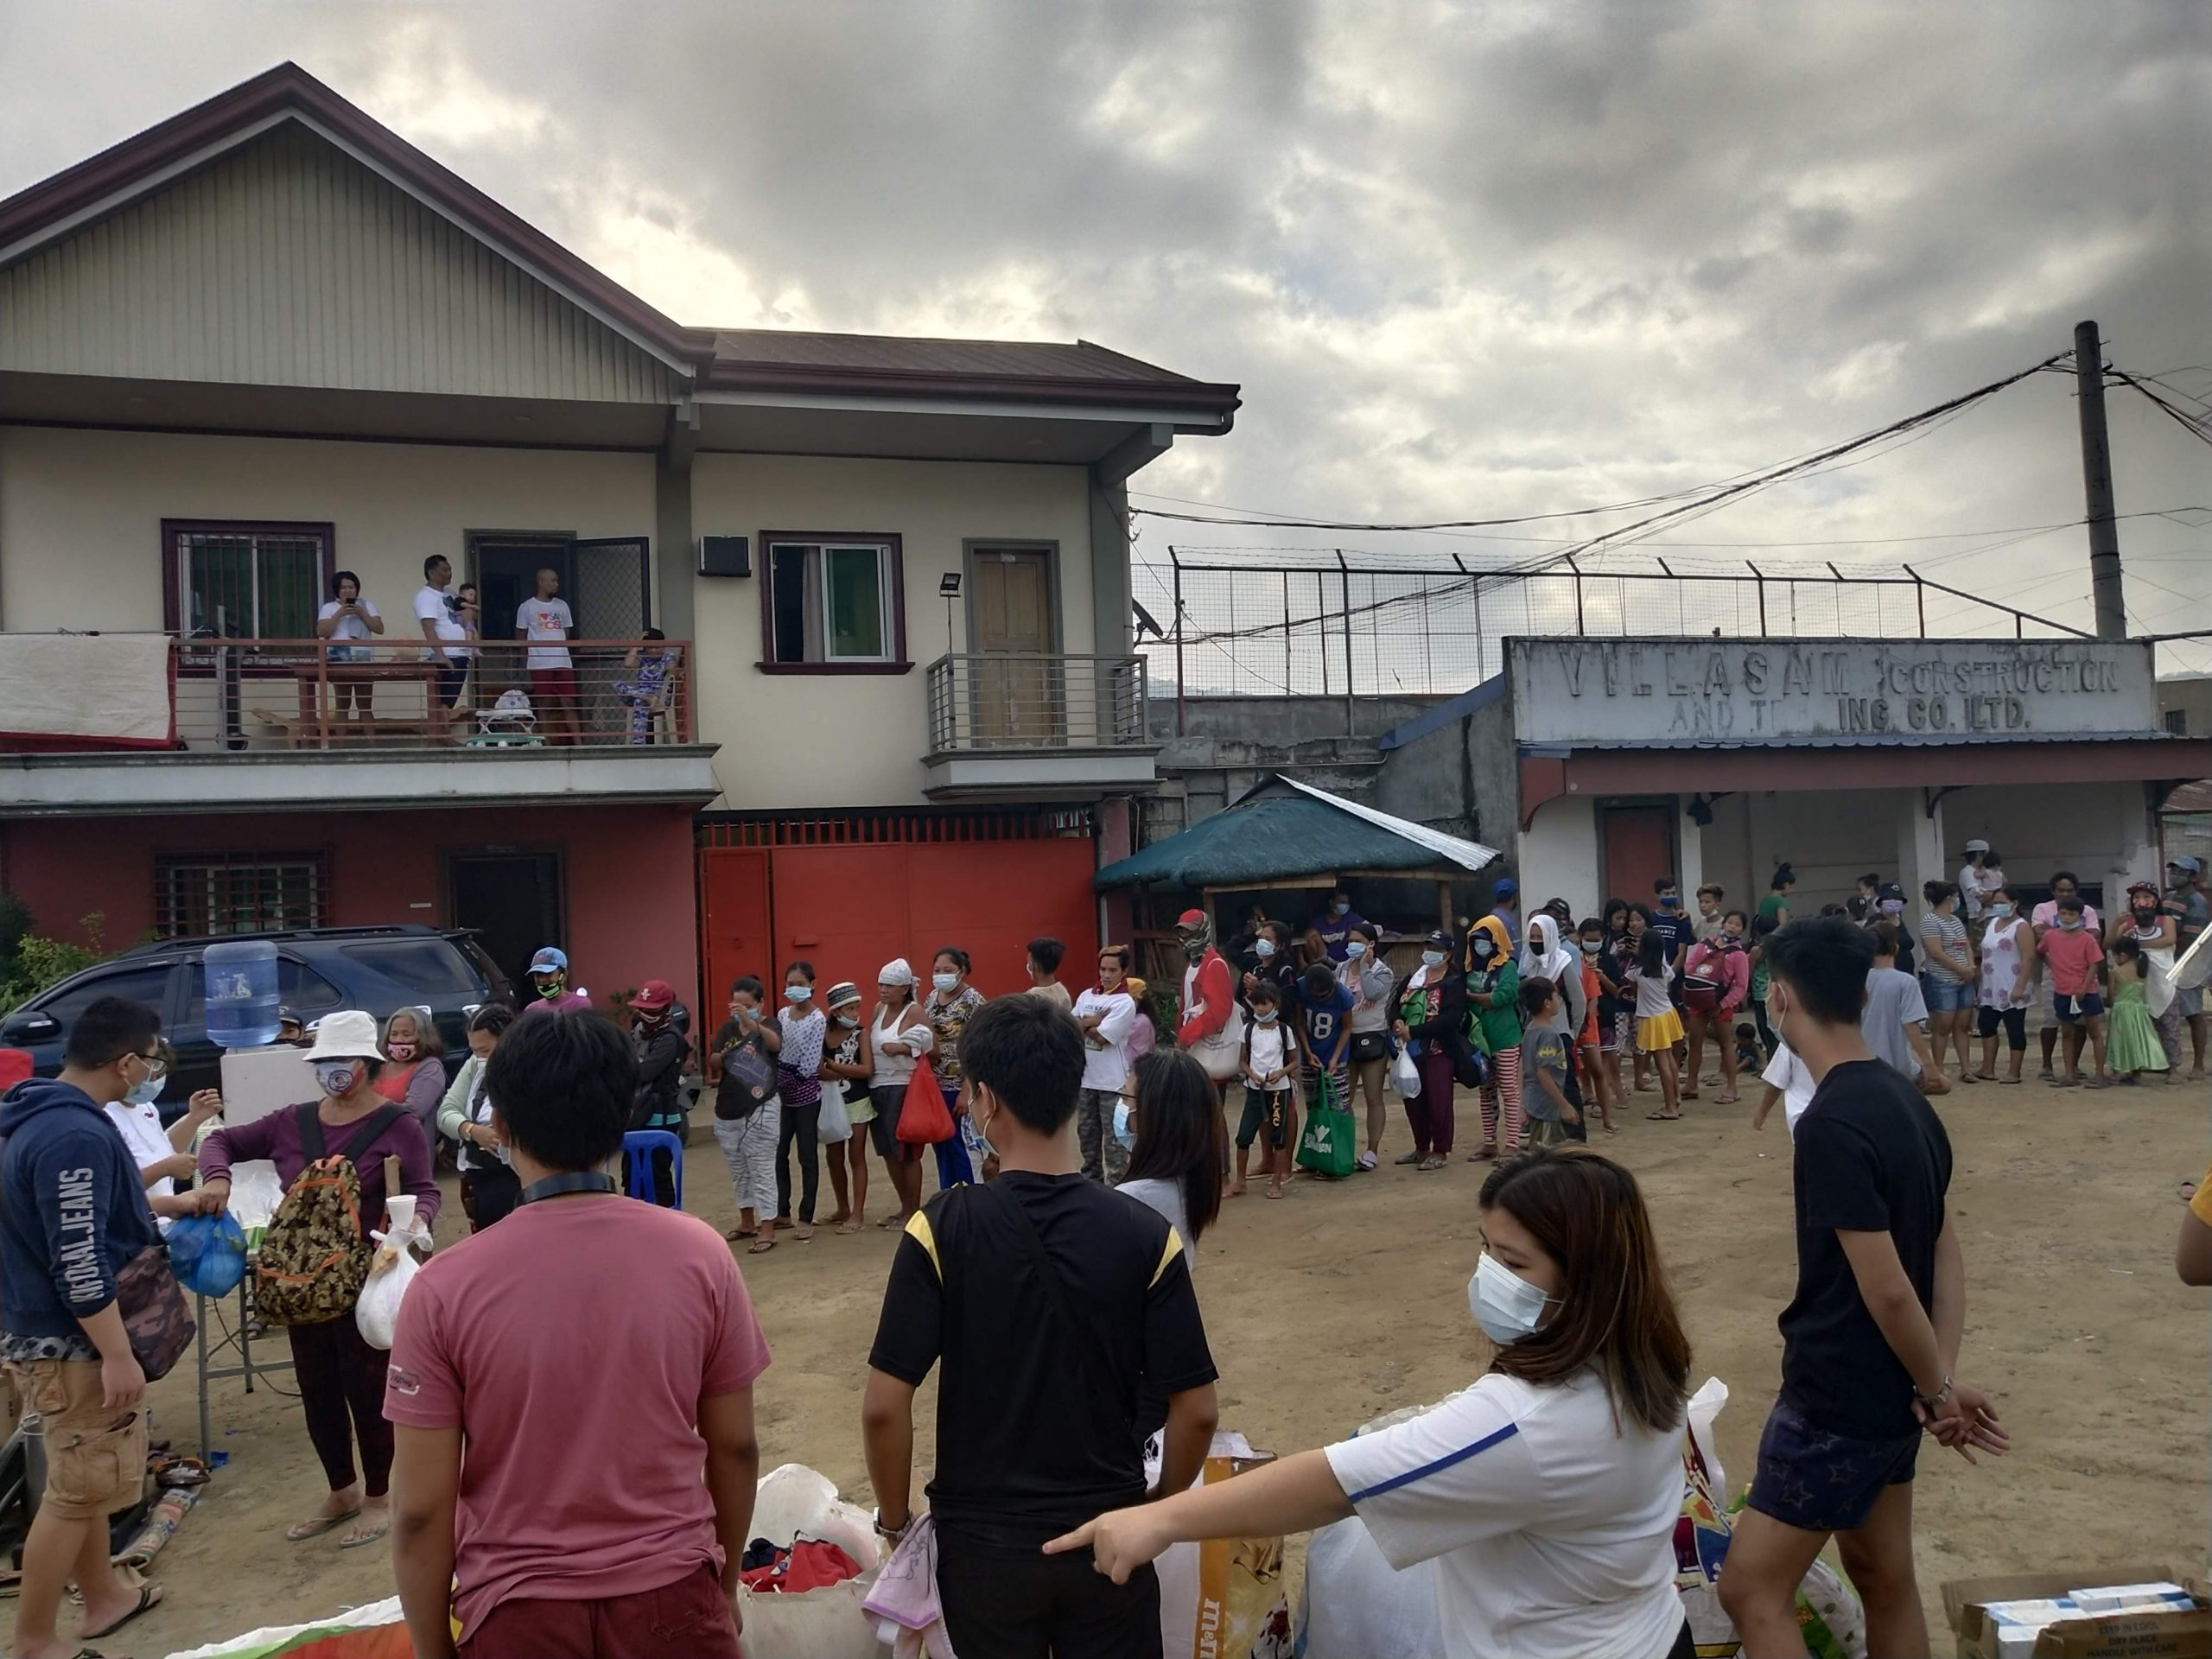 People in line for the relief goods